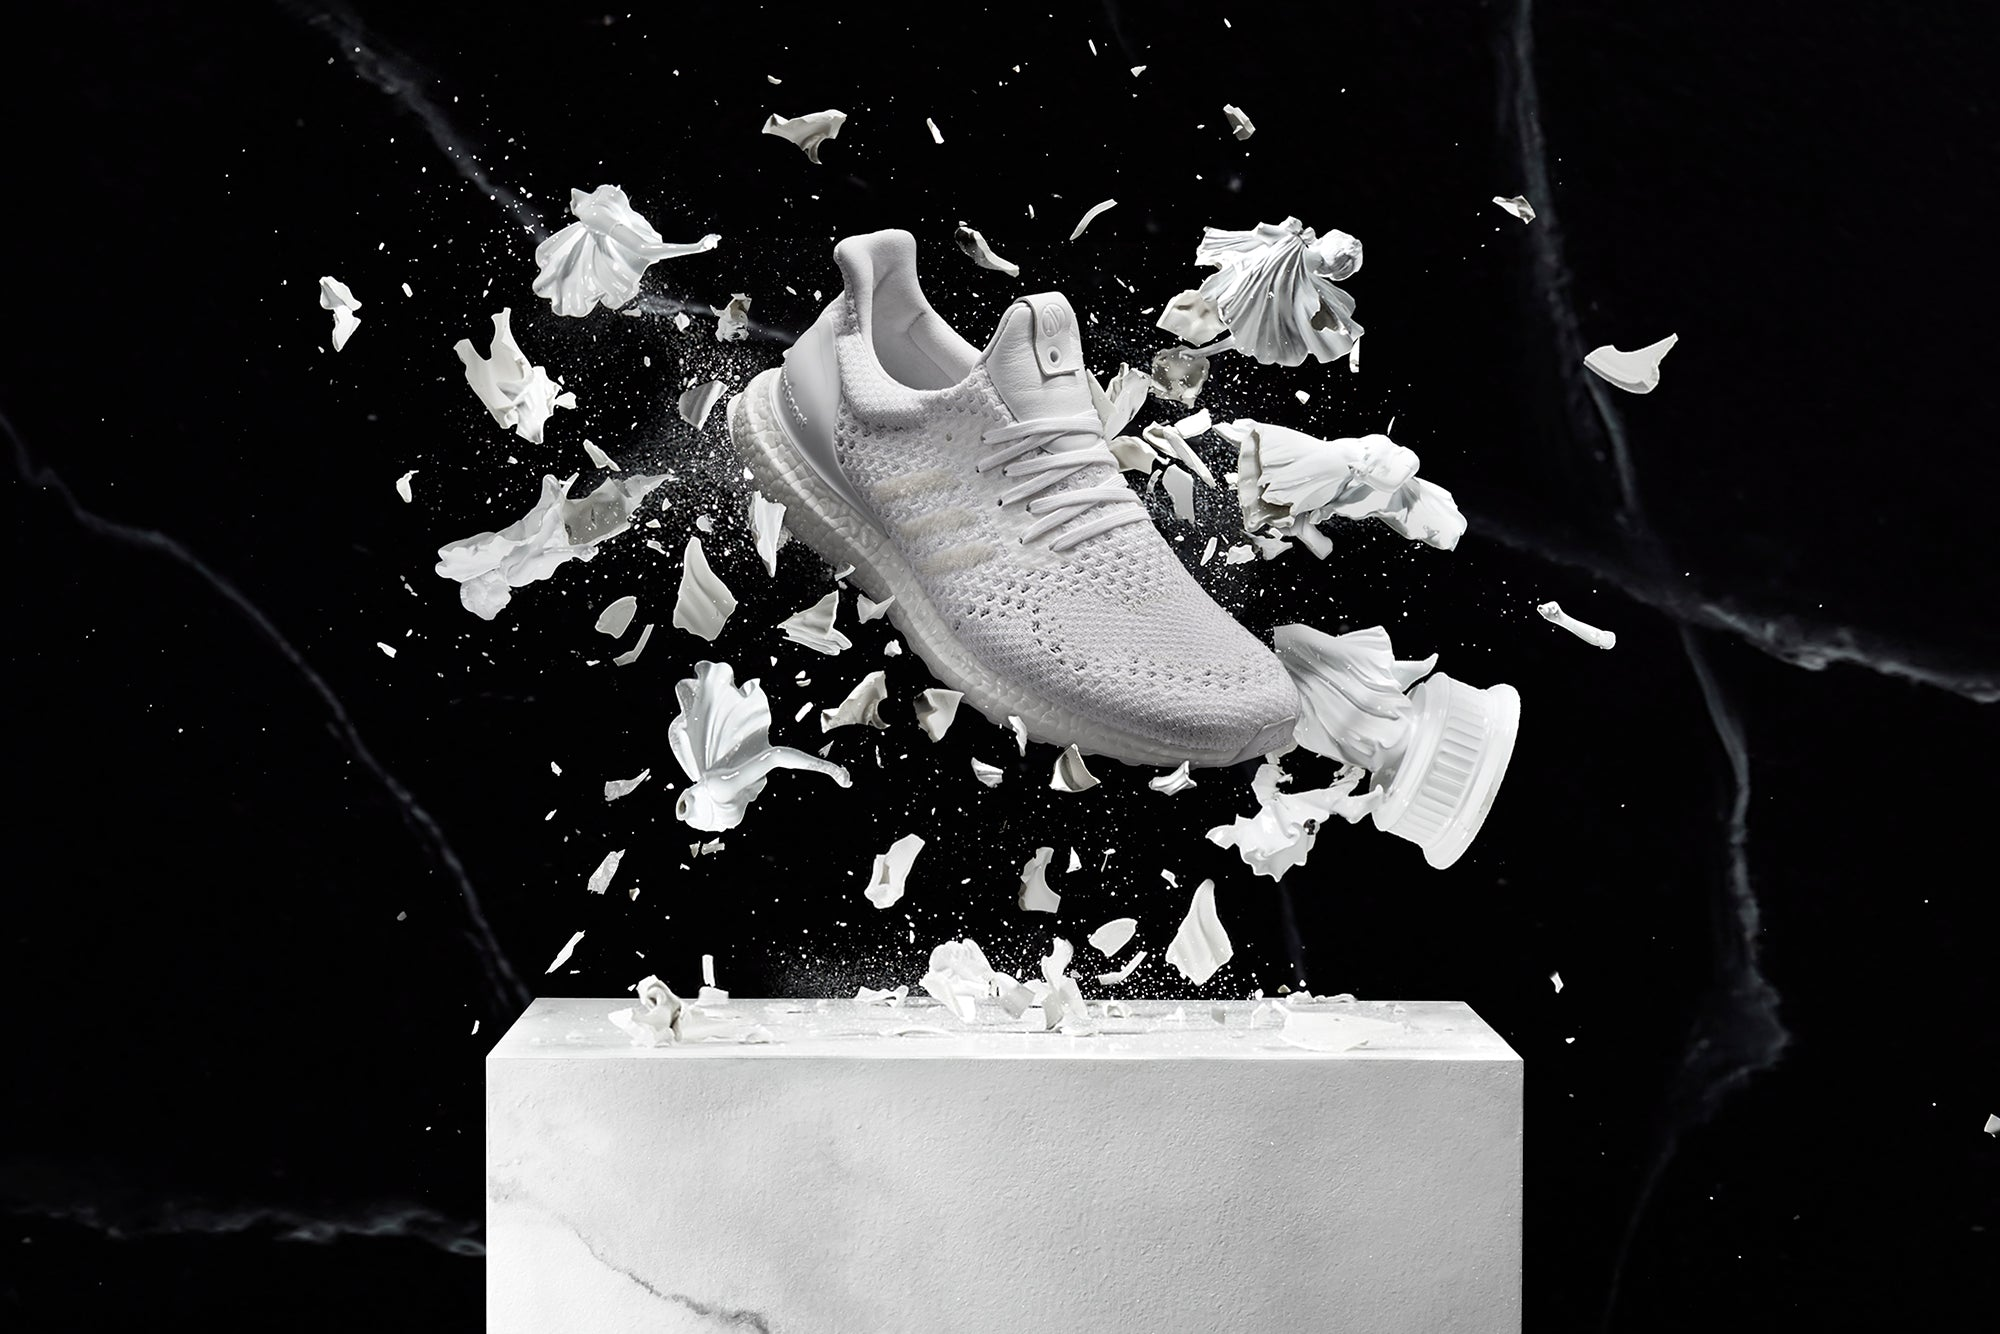 8bb34b01e35c5 The Adidas Consortium Sneaker Exchange A Ma Maniere x Invincible Pack  launches in-store and online December 9th.